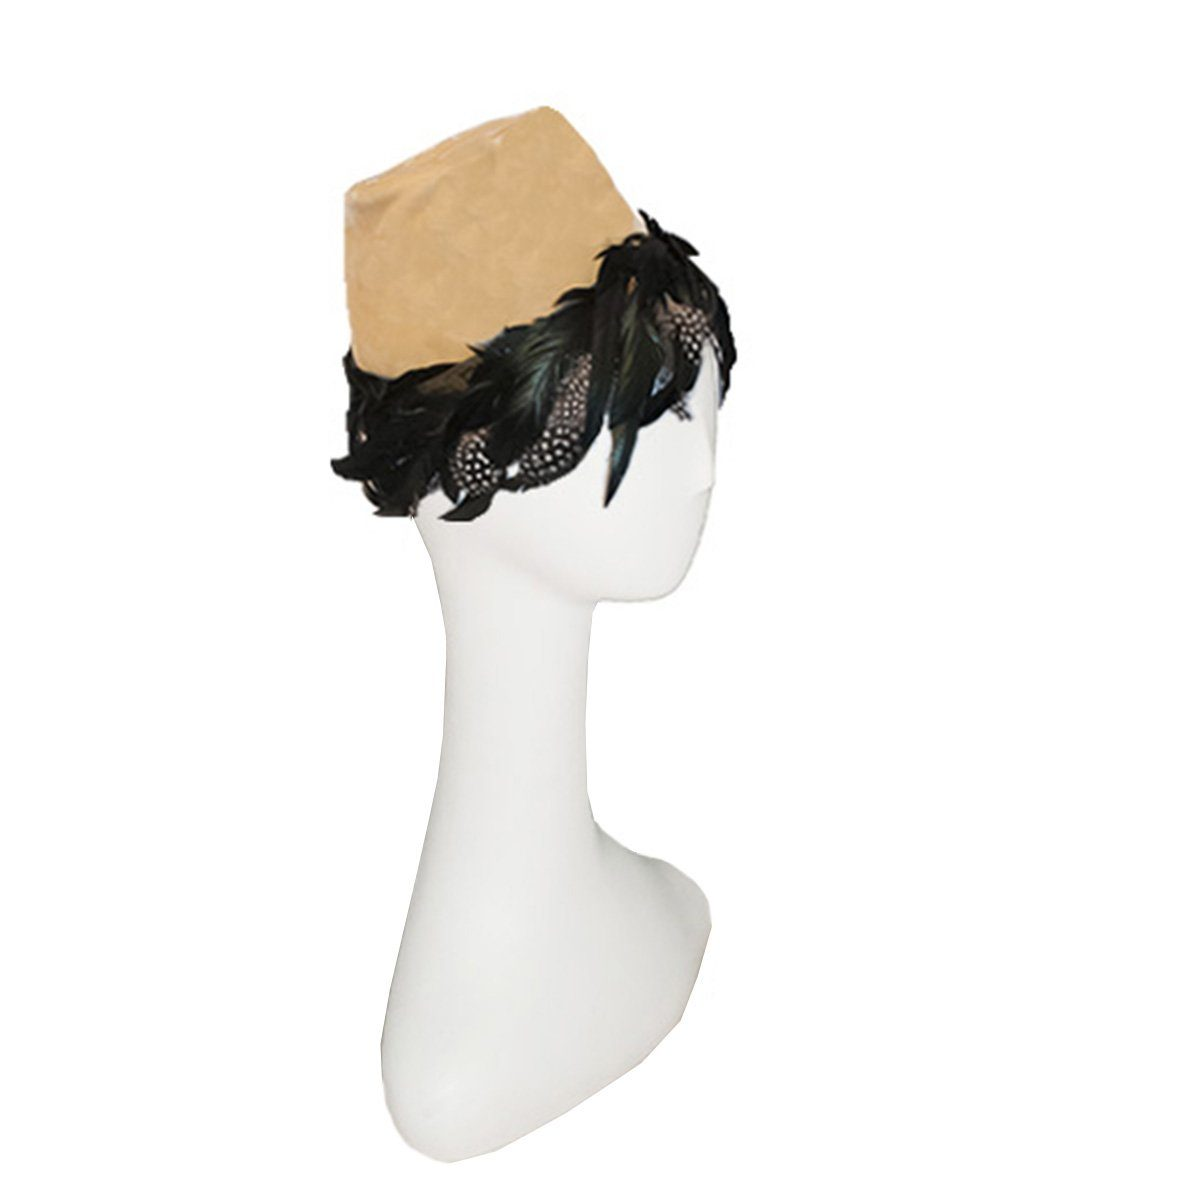 1950s John Frederics Hat, Gold Velvet, Black Hackle Feathers, Hat Size 20